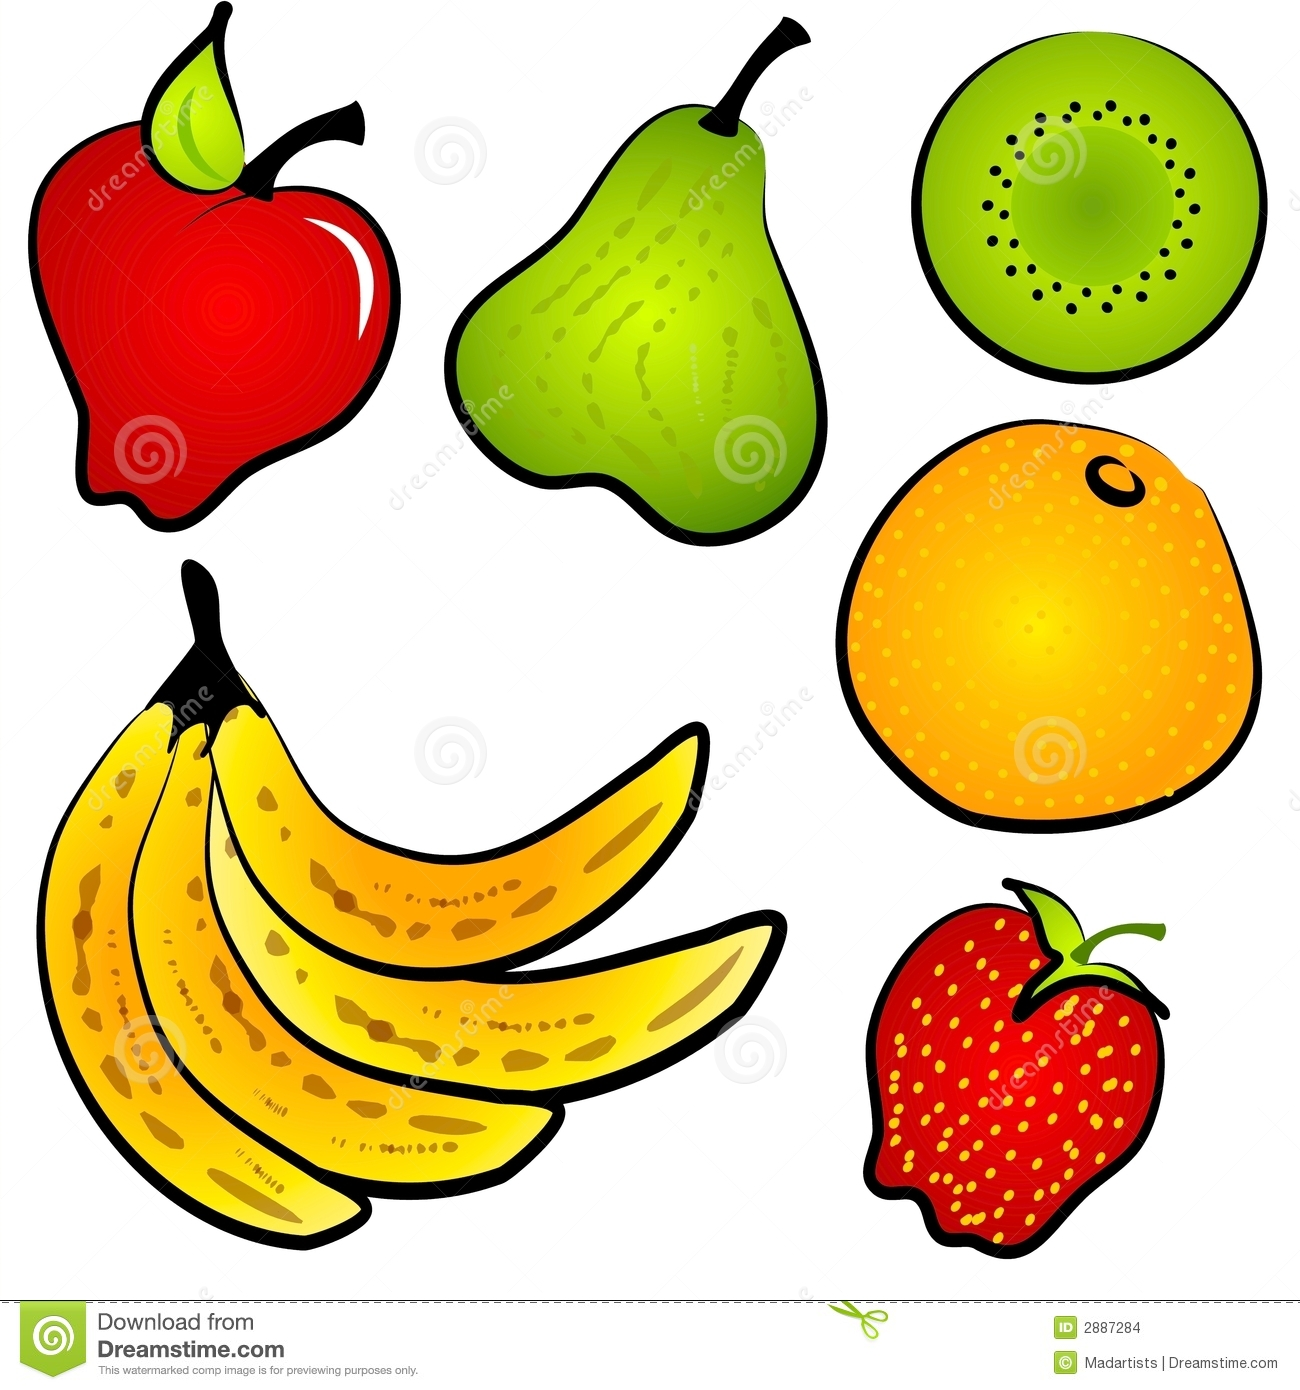 Clip Art Collection Of Healthy Fruits In-Clip Art Collection Of Healthy Fruits Including Kiwi Apple-12